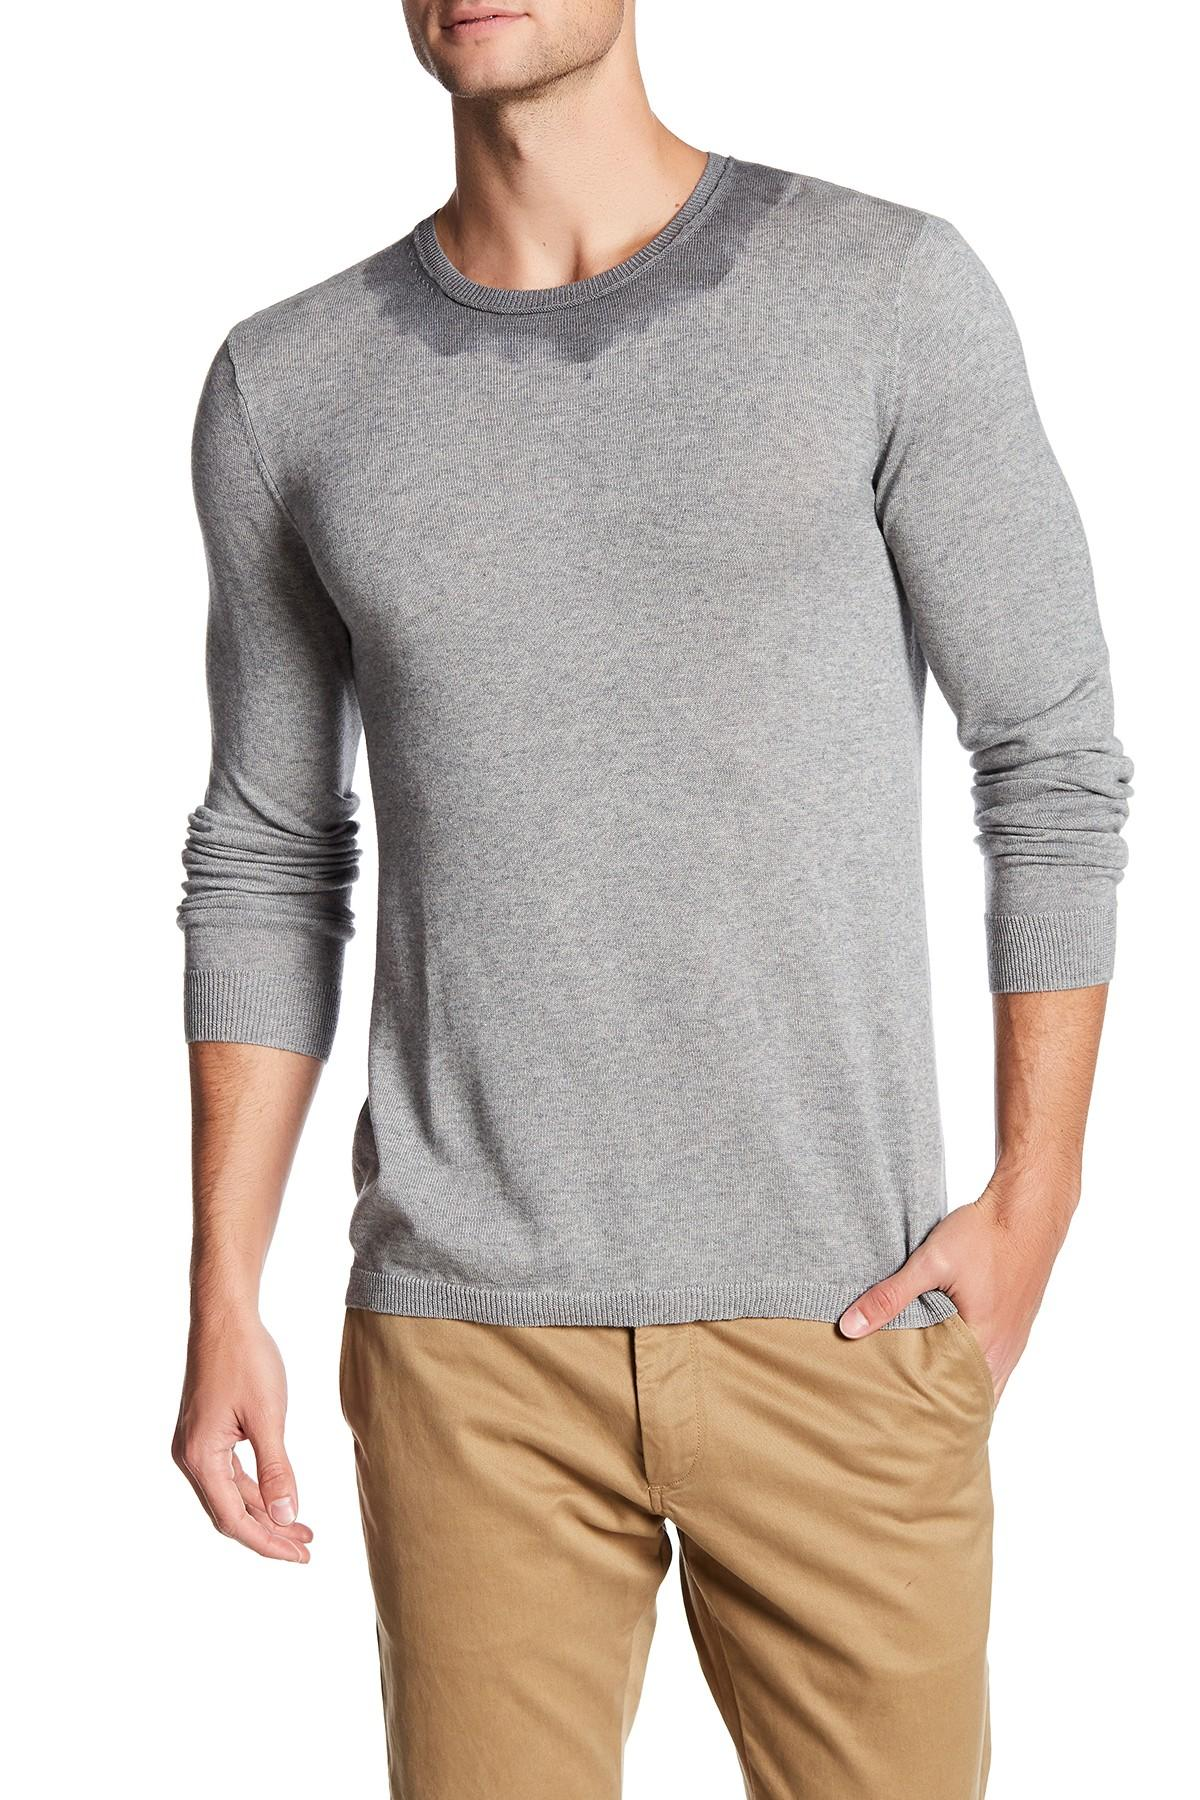 Autumn cashmere Dip Dyed Collar Tee in Gray for Men